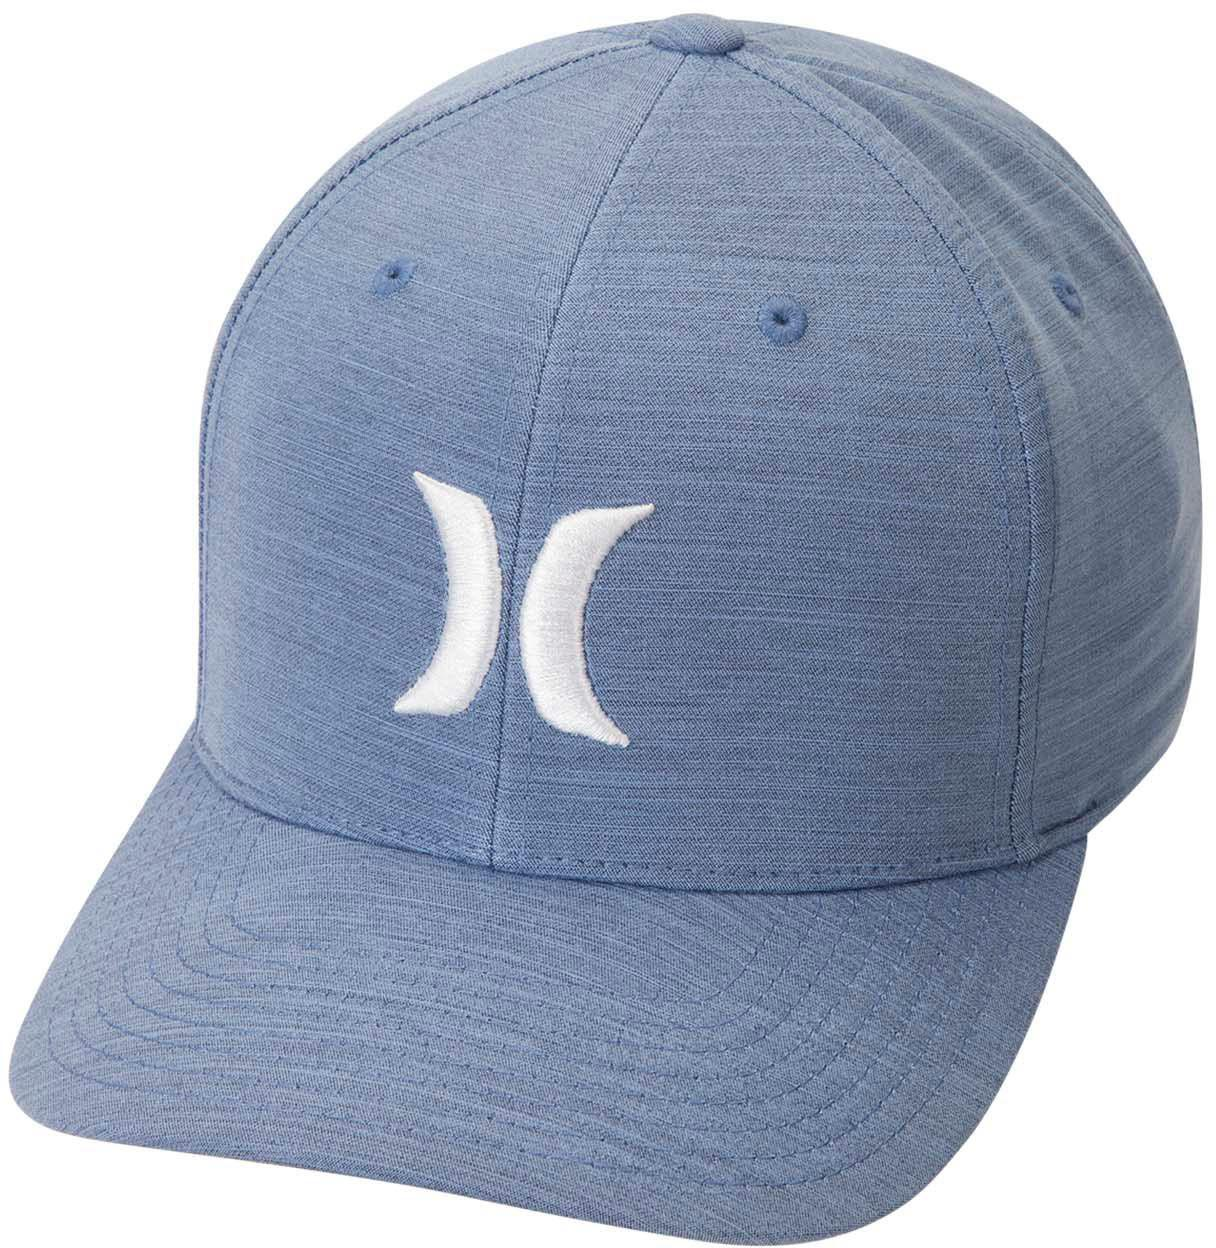 4bdd41e132dca Hurley Dri-fit Cutback Hat in Blue for Men - Save 17% - Lyst